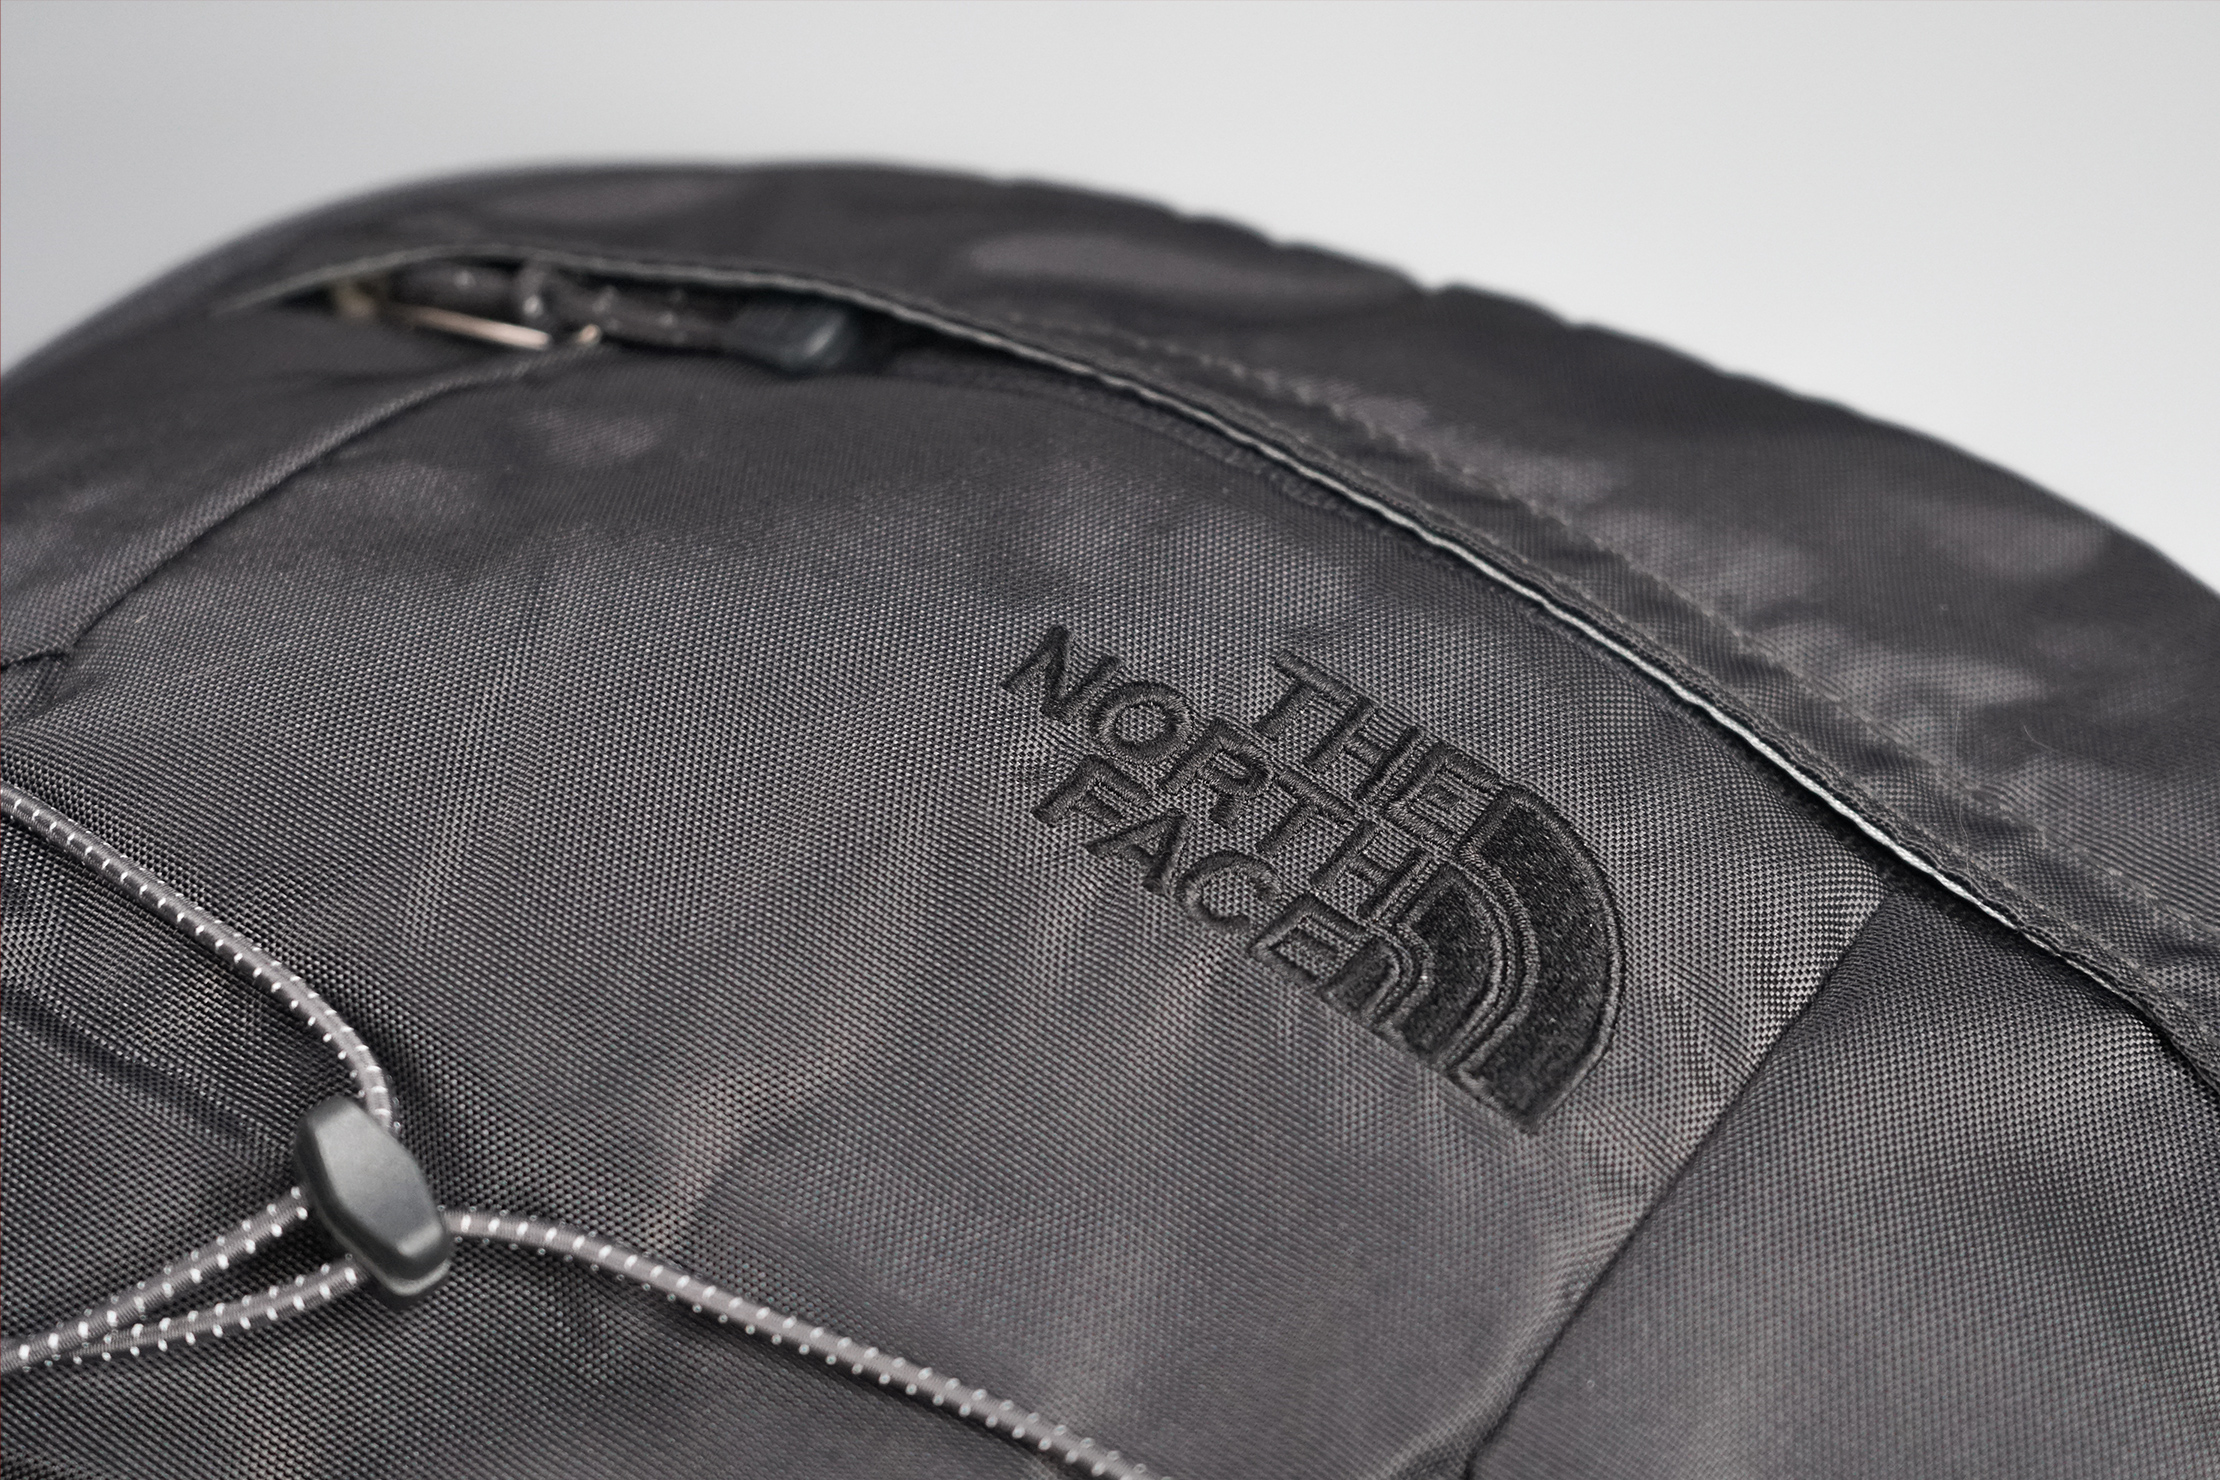 The North Face Borealis Backpack Material and Logo